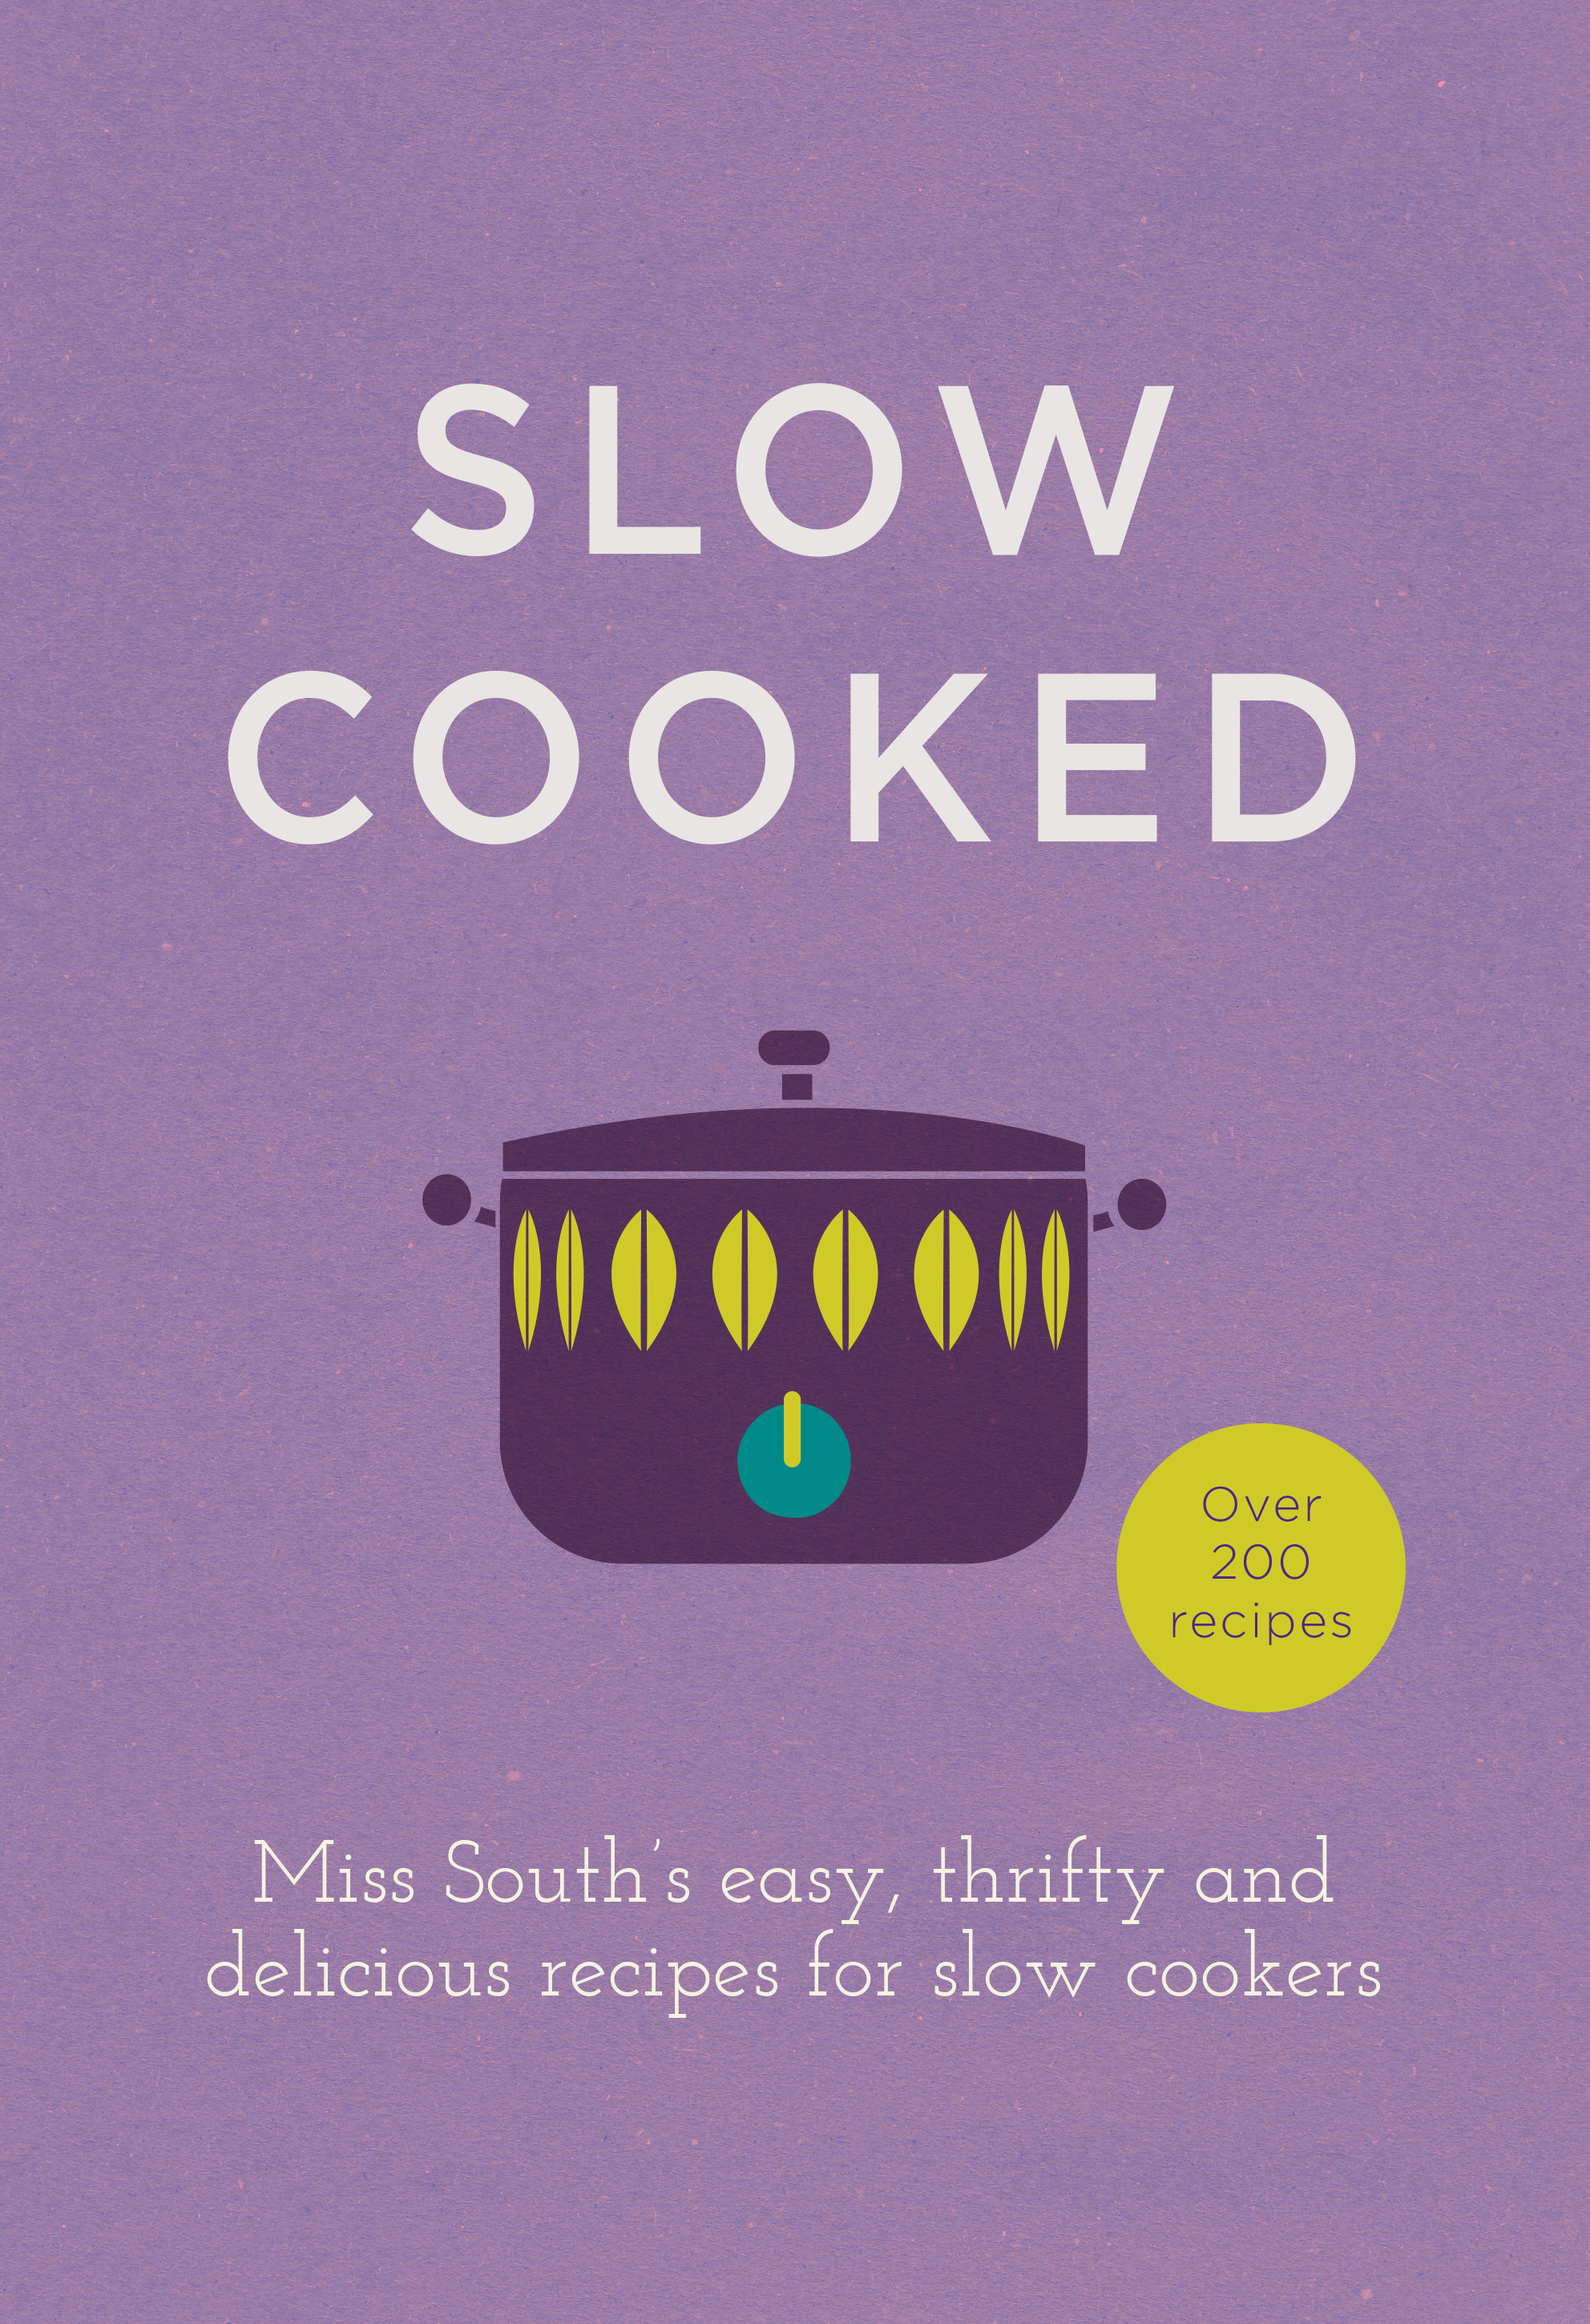 Slow Cooked 200 exciting,  new recipes for your slow cooker